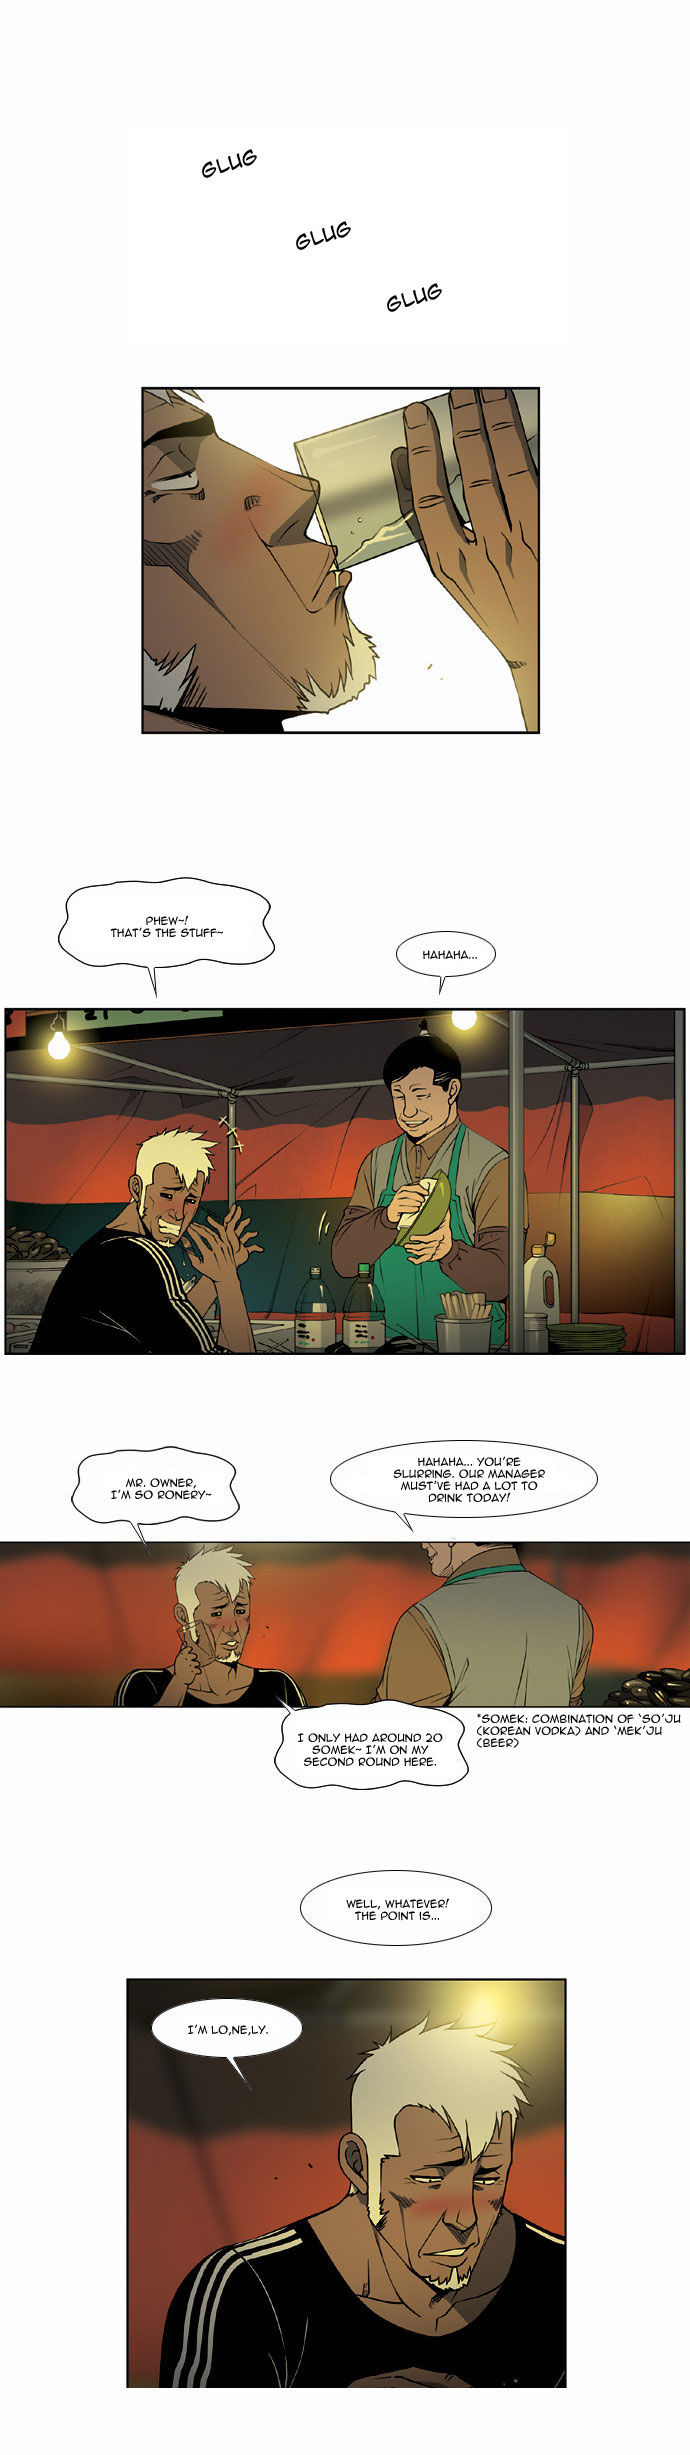 Killer Stall 20 Page 2